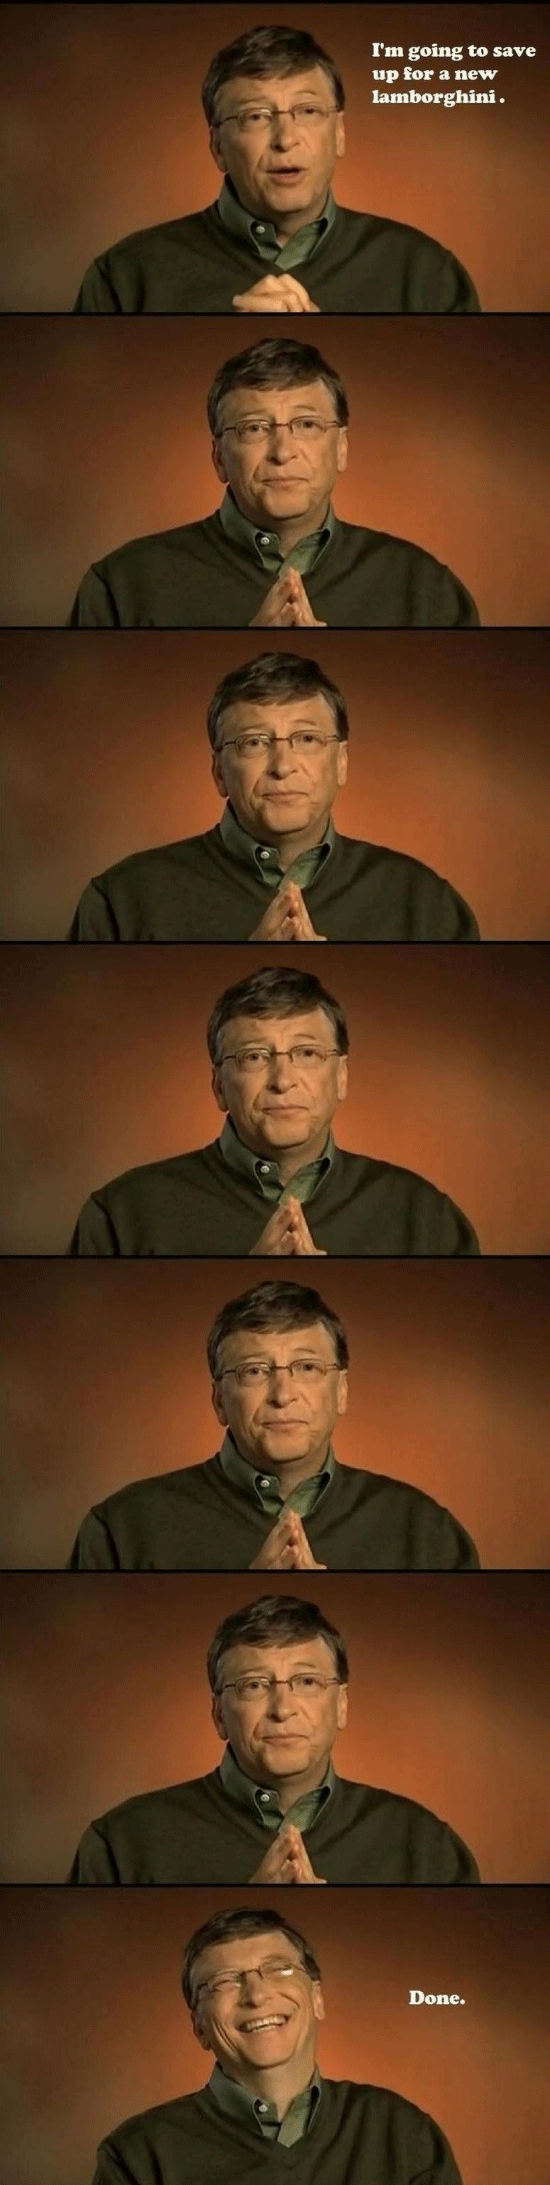 bill gates saves for a lamborghini